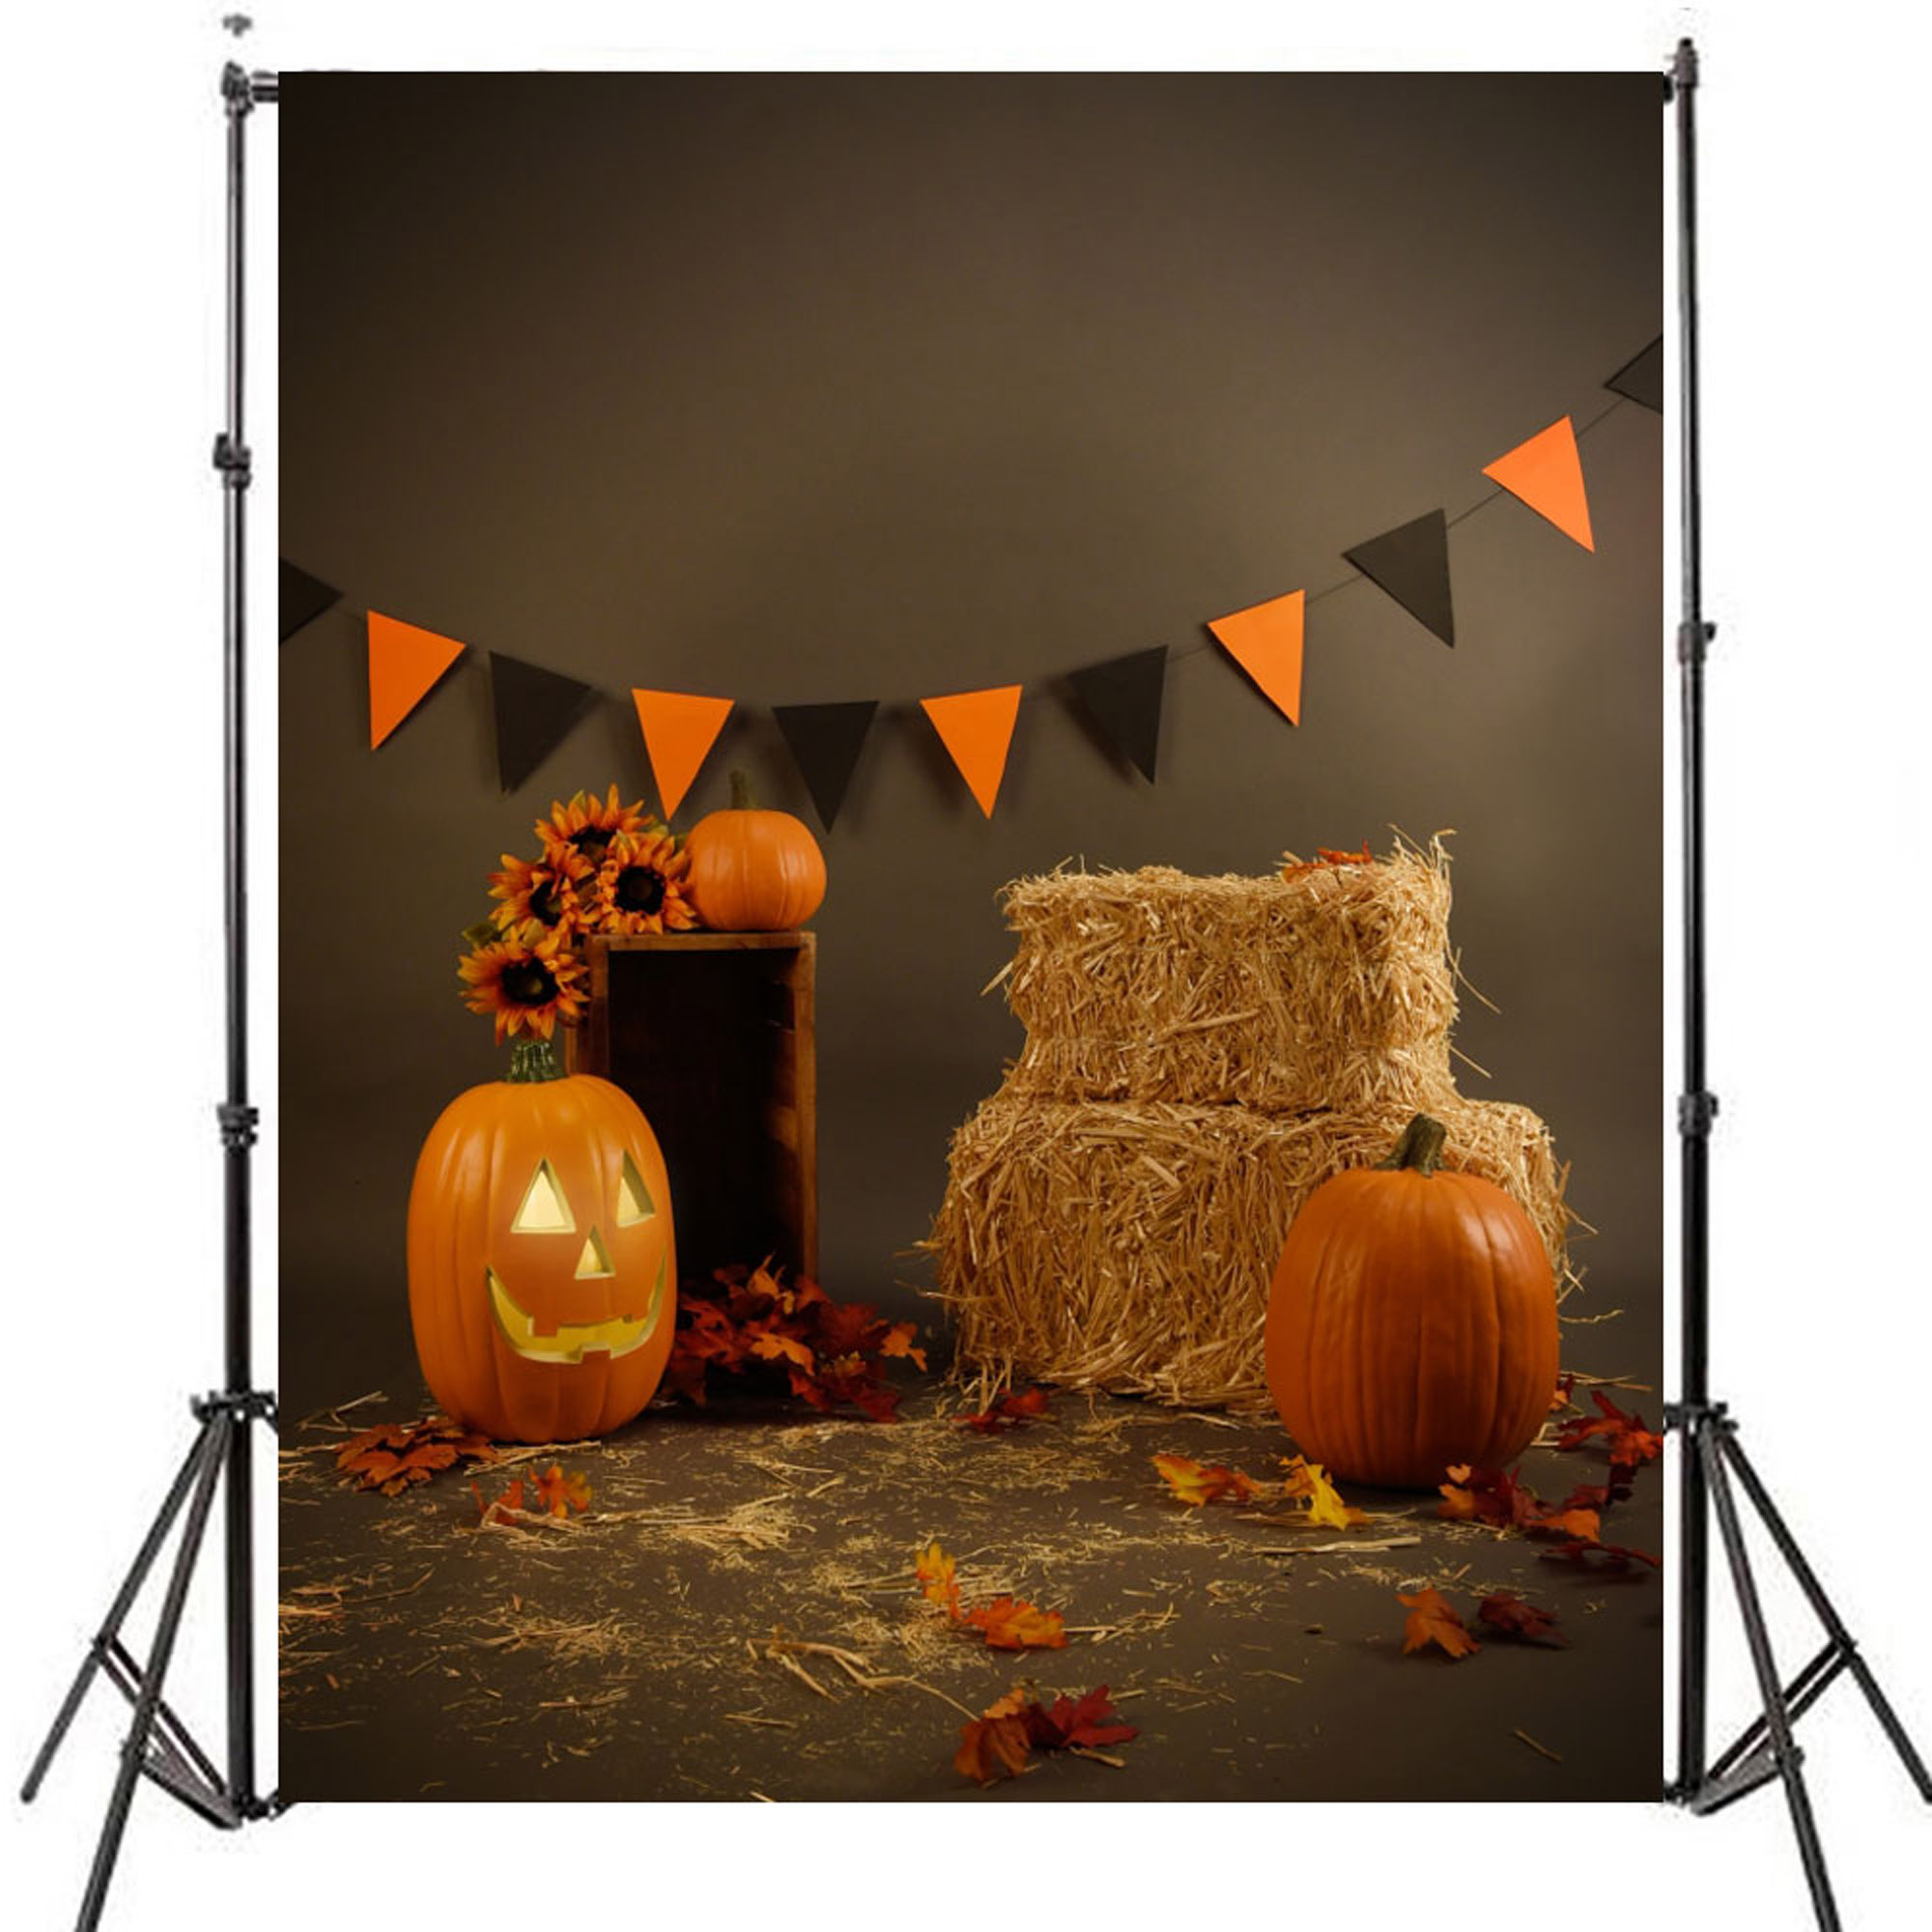 W Night Halloween Photography Background with Gate Pumpkin Lantern Graveyard Tomb Backdrops for Photographic Studio Props Cotton Cloth Halloween Background x5ft H Kate7ft